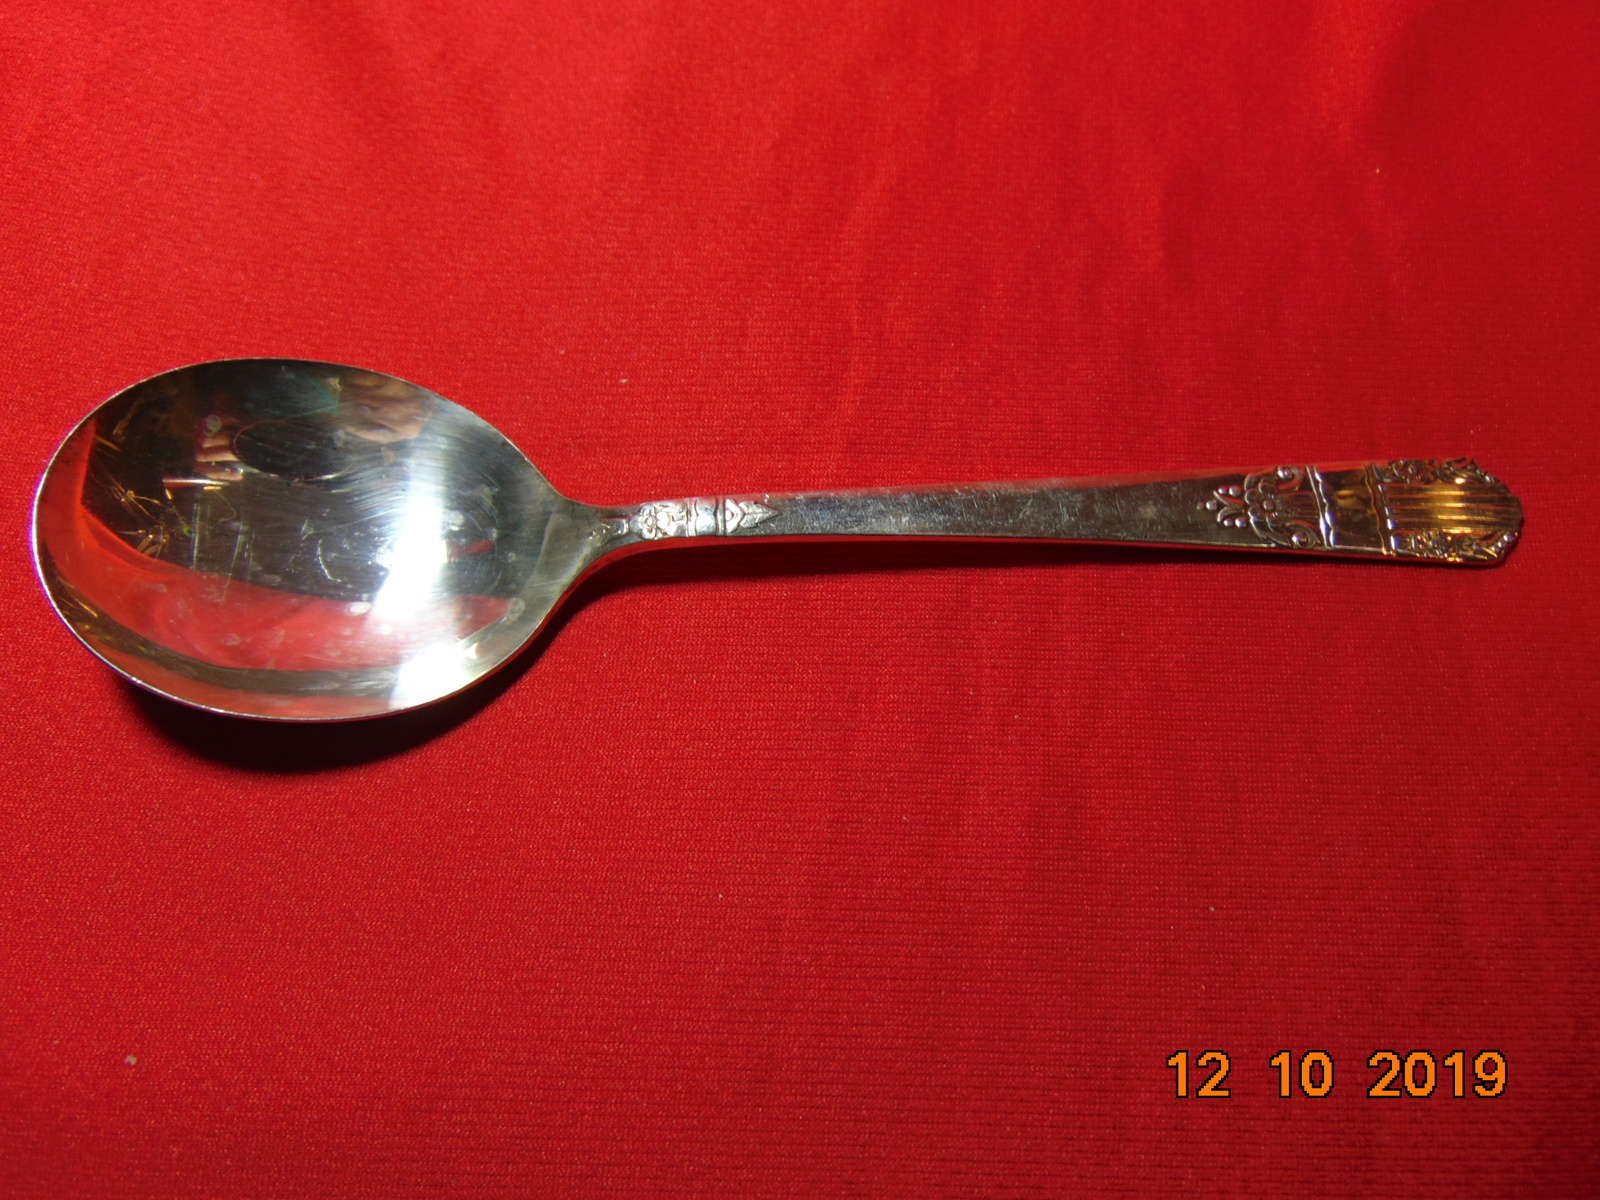 "Primary image for 7"" Silver Plated, Soup (gumbo) Spoon, Wm A Rogers/Oneida, 1938 Harmony Pattern."